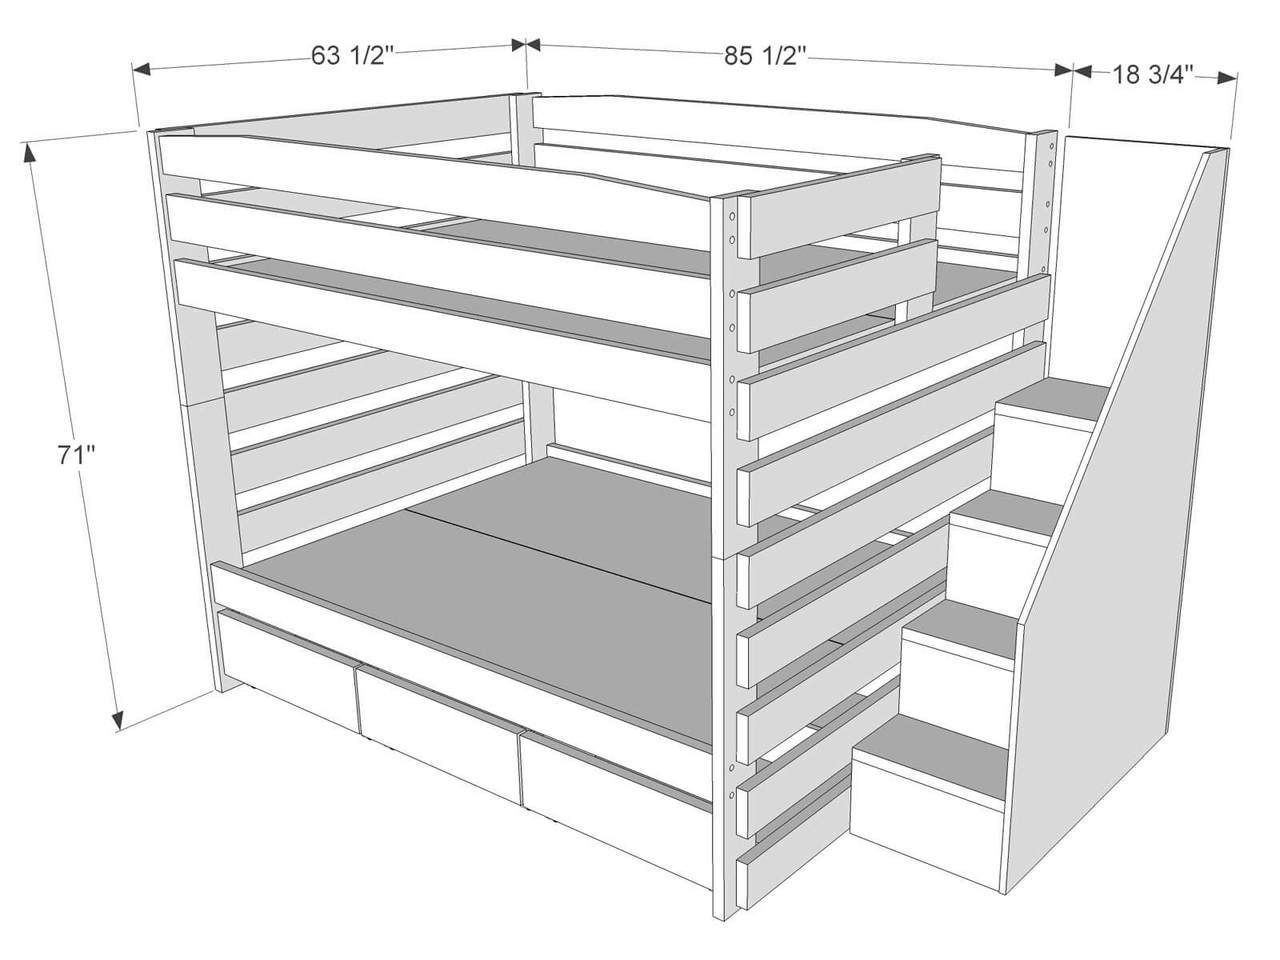 Dimensions Of Bunk Bed B102 Bunk Bed With Stairs And Storage Queen Bunk Beds Bunk Beds